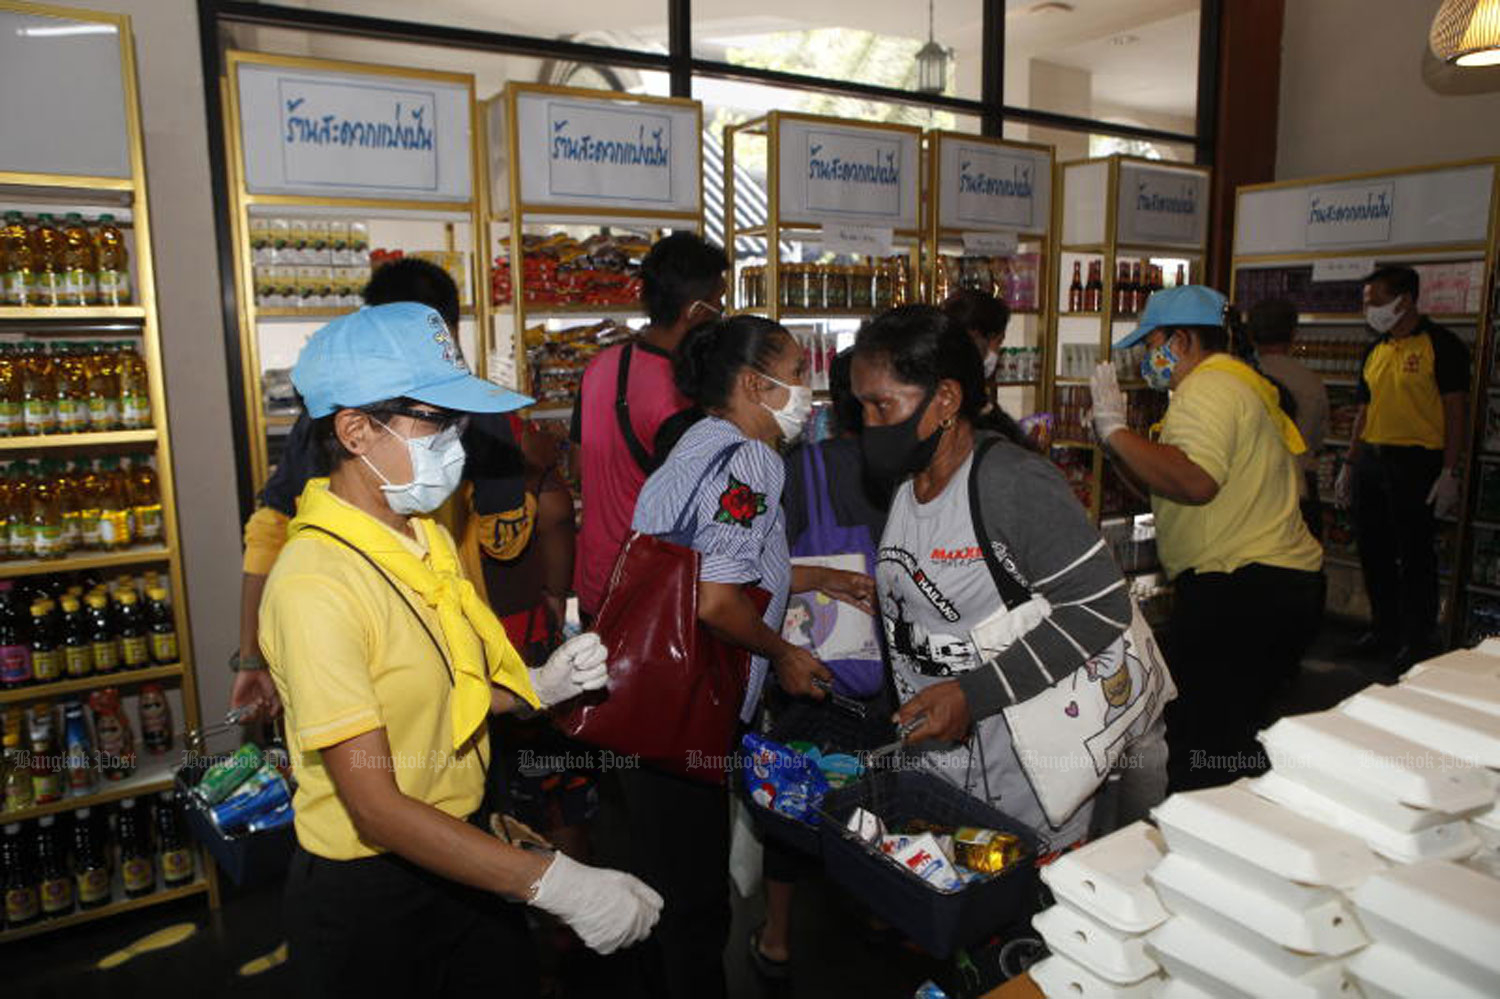 People take free food, drinks and everyday items at a sharing store on Ekkamai Soi 3 in Bangkok's Watthana district on Friday. Each was allowed to take five items. The store is open from 11am to 1pm and from 3pm to 5pm each day until June 26 to help people affected by the impact of the Covid-19 outbreak. (Photo: Nutthawat Wicheanbut)